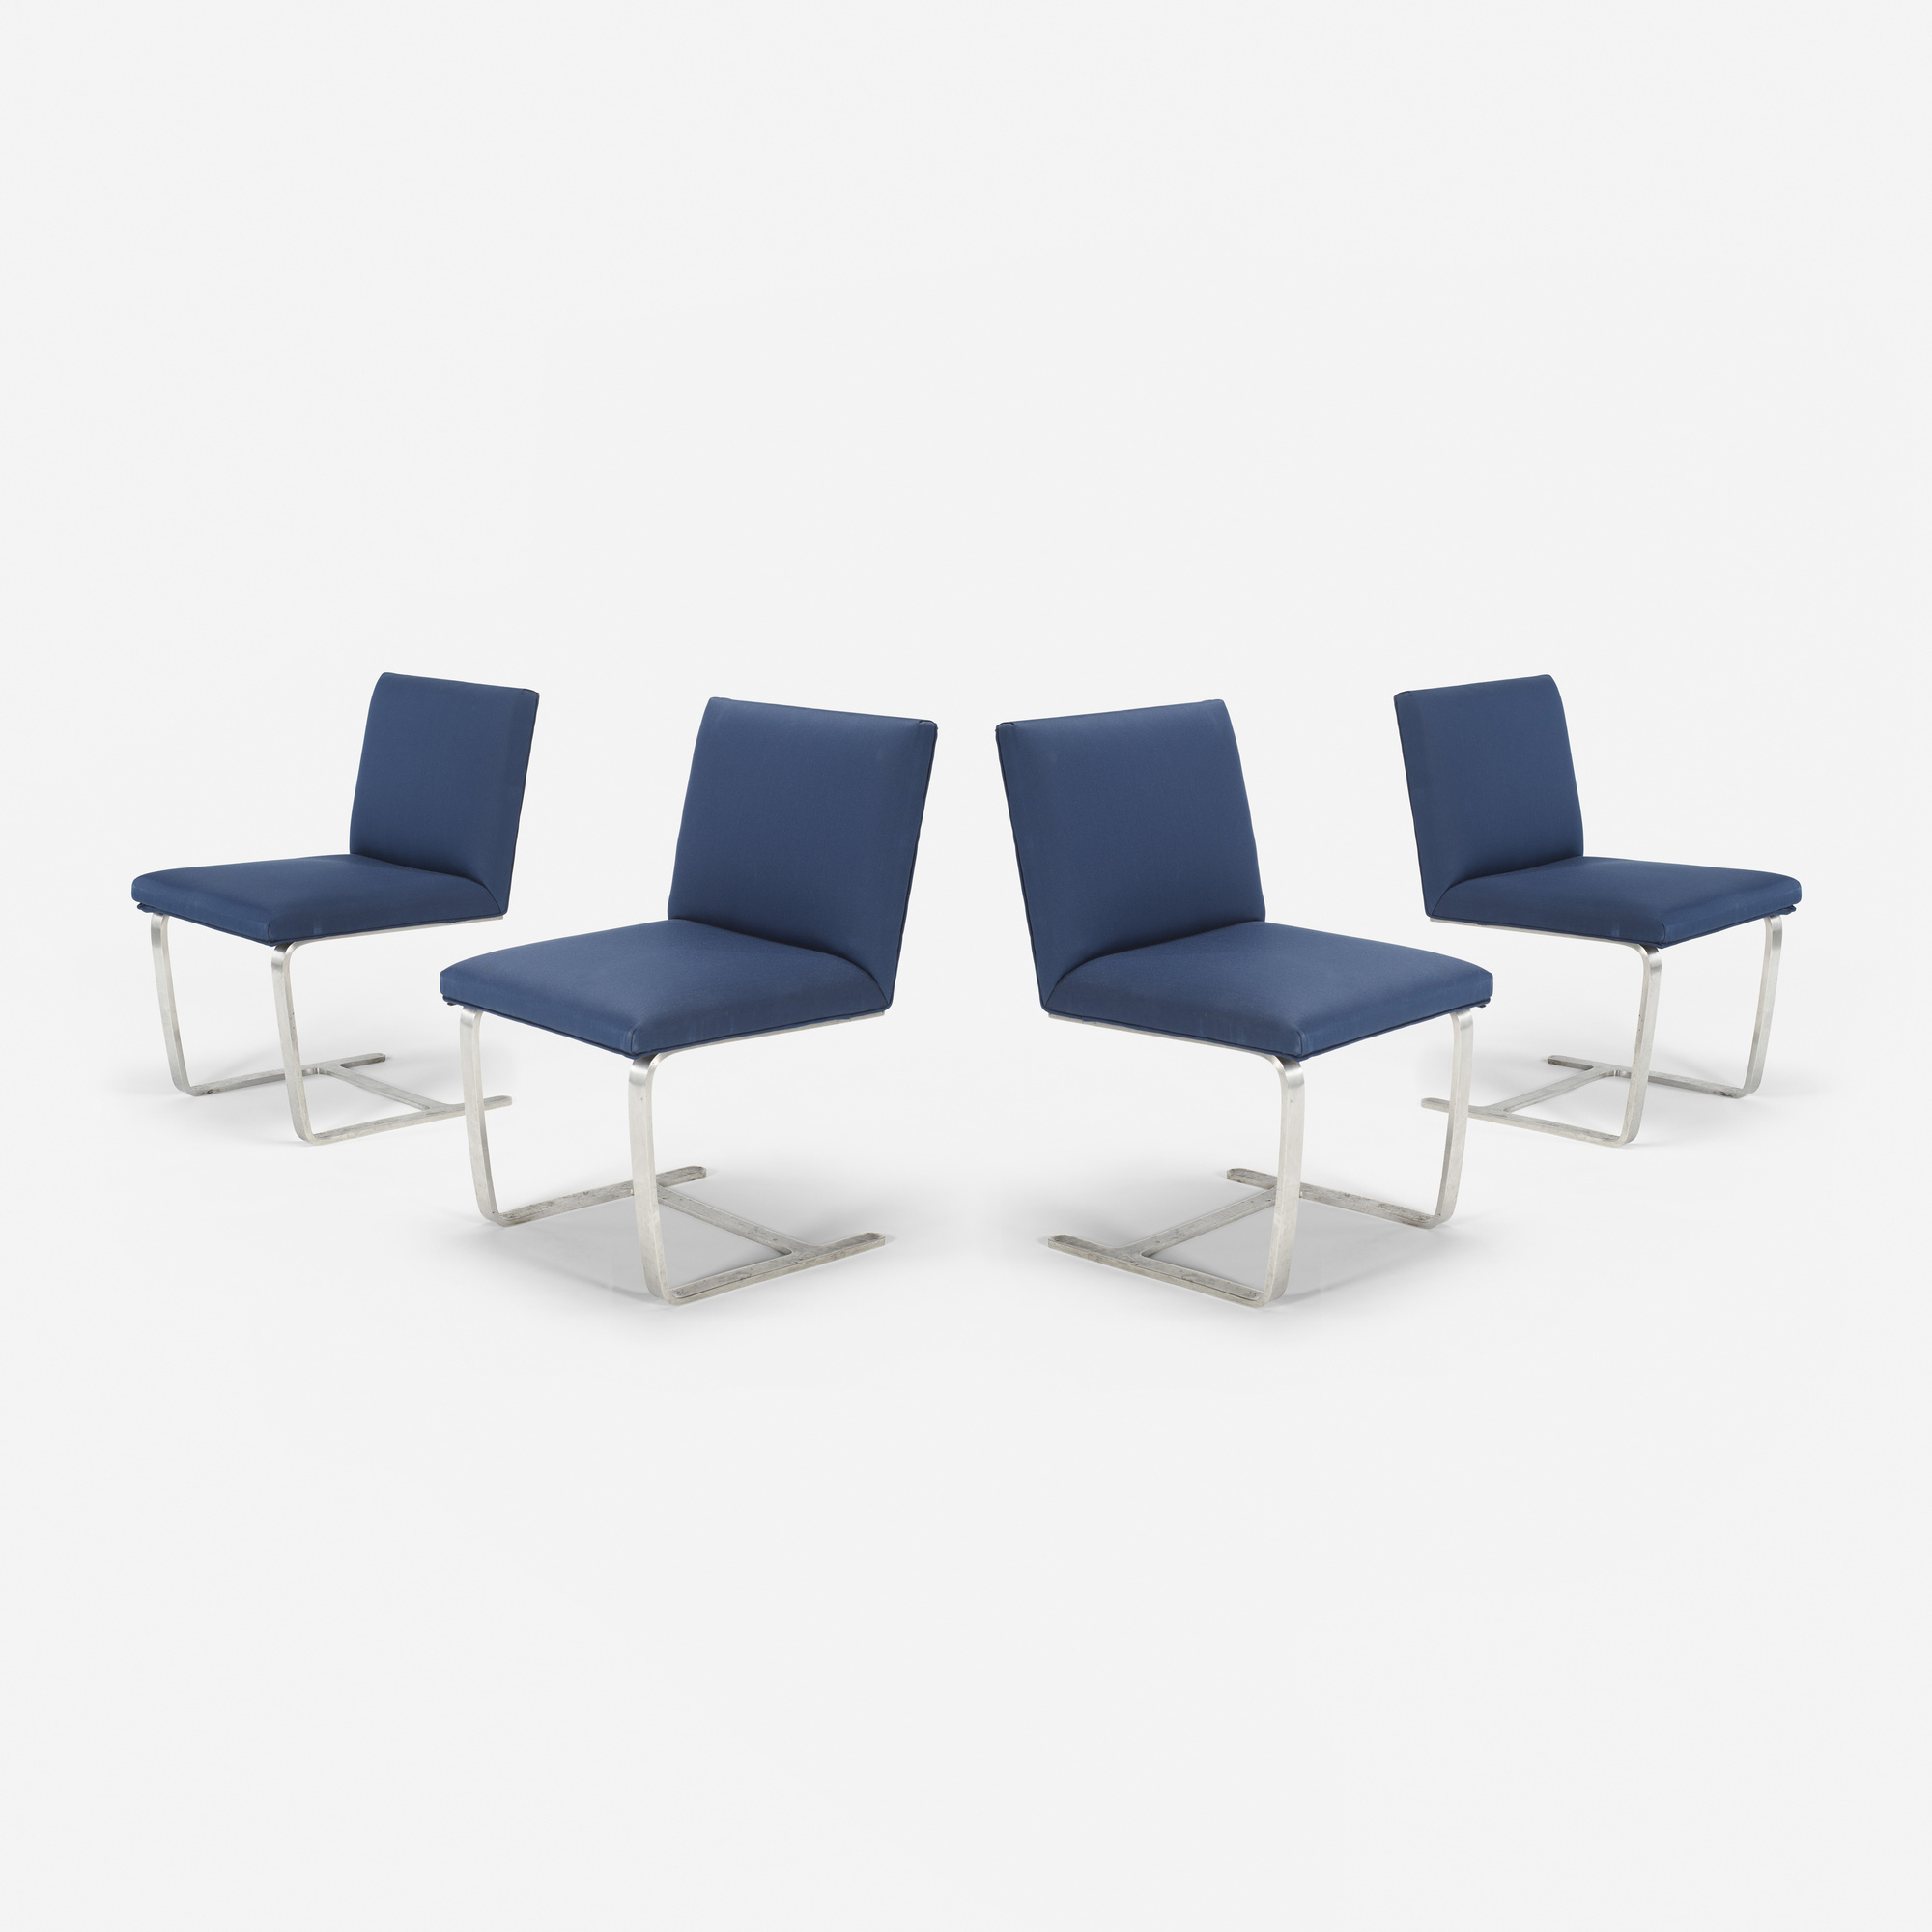 214: Ludwig Mies van der Rohe / Custom Brno side chairs from The Four Seasons, set of four (1 of 1)